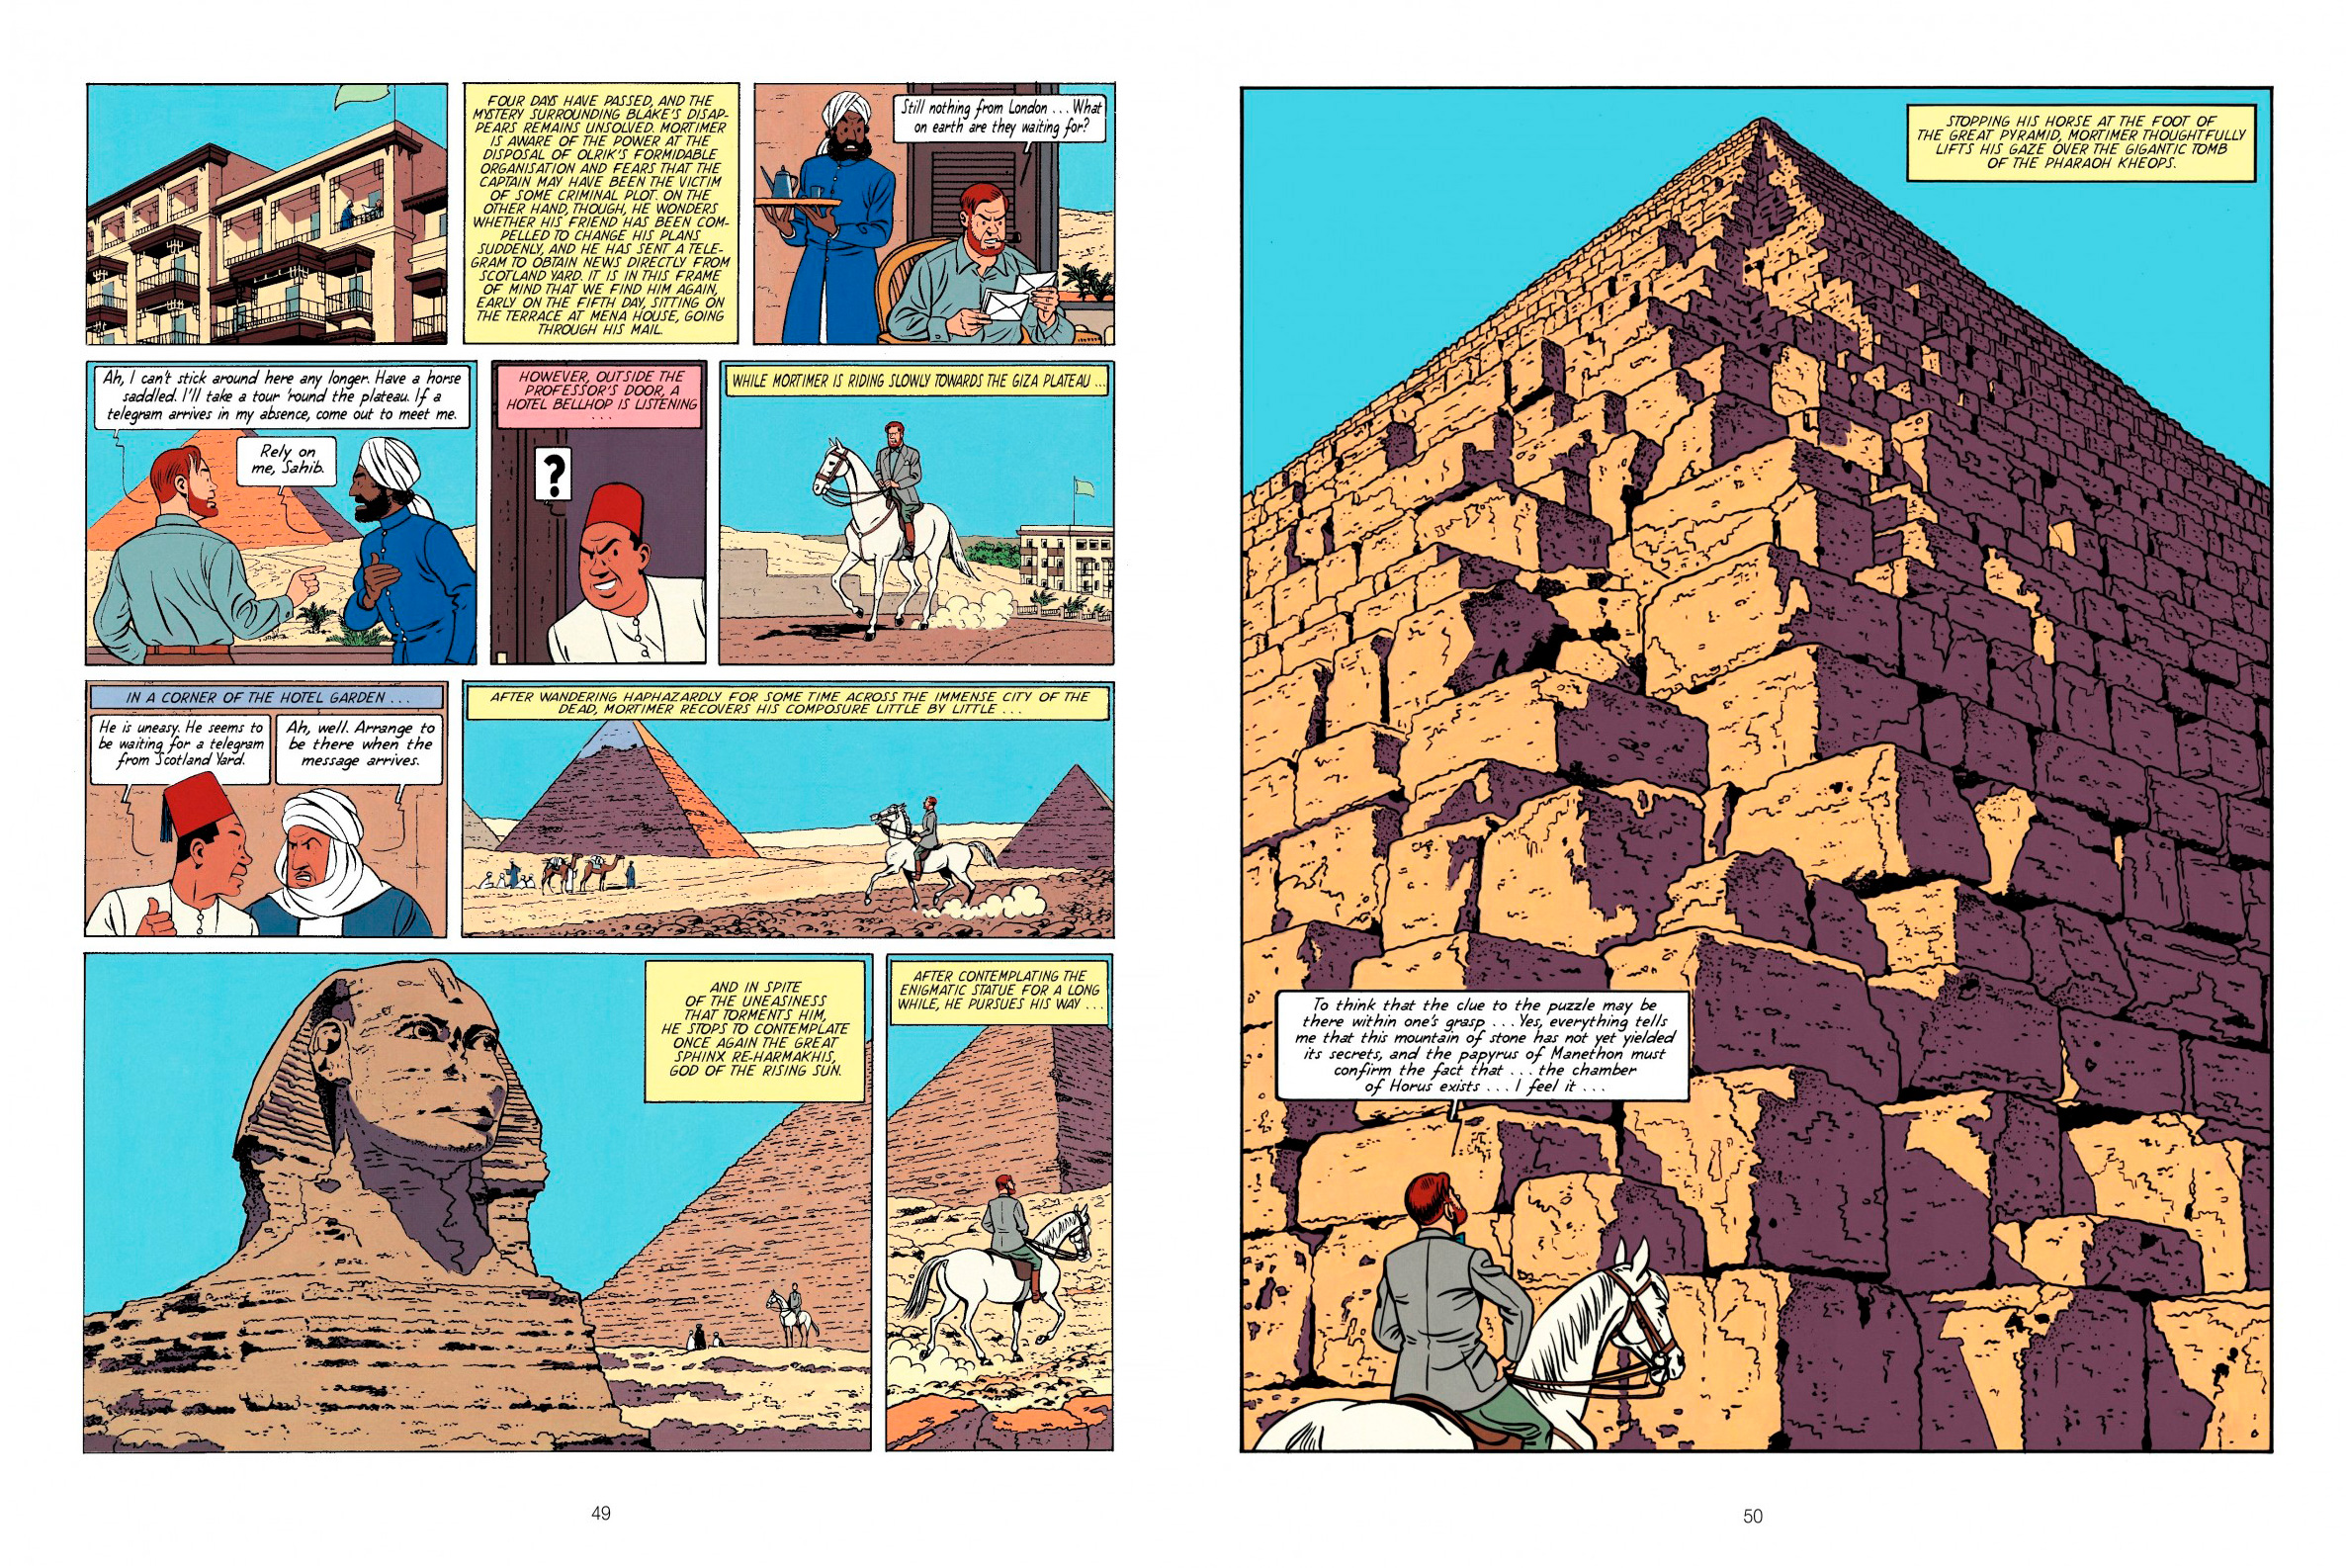 Blake and Mortimer The Mystery of the Great Pyramid Pt 1 review